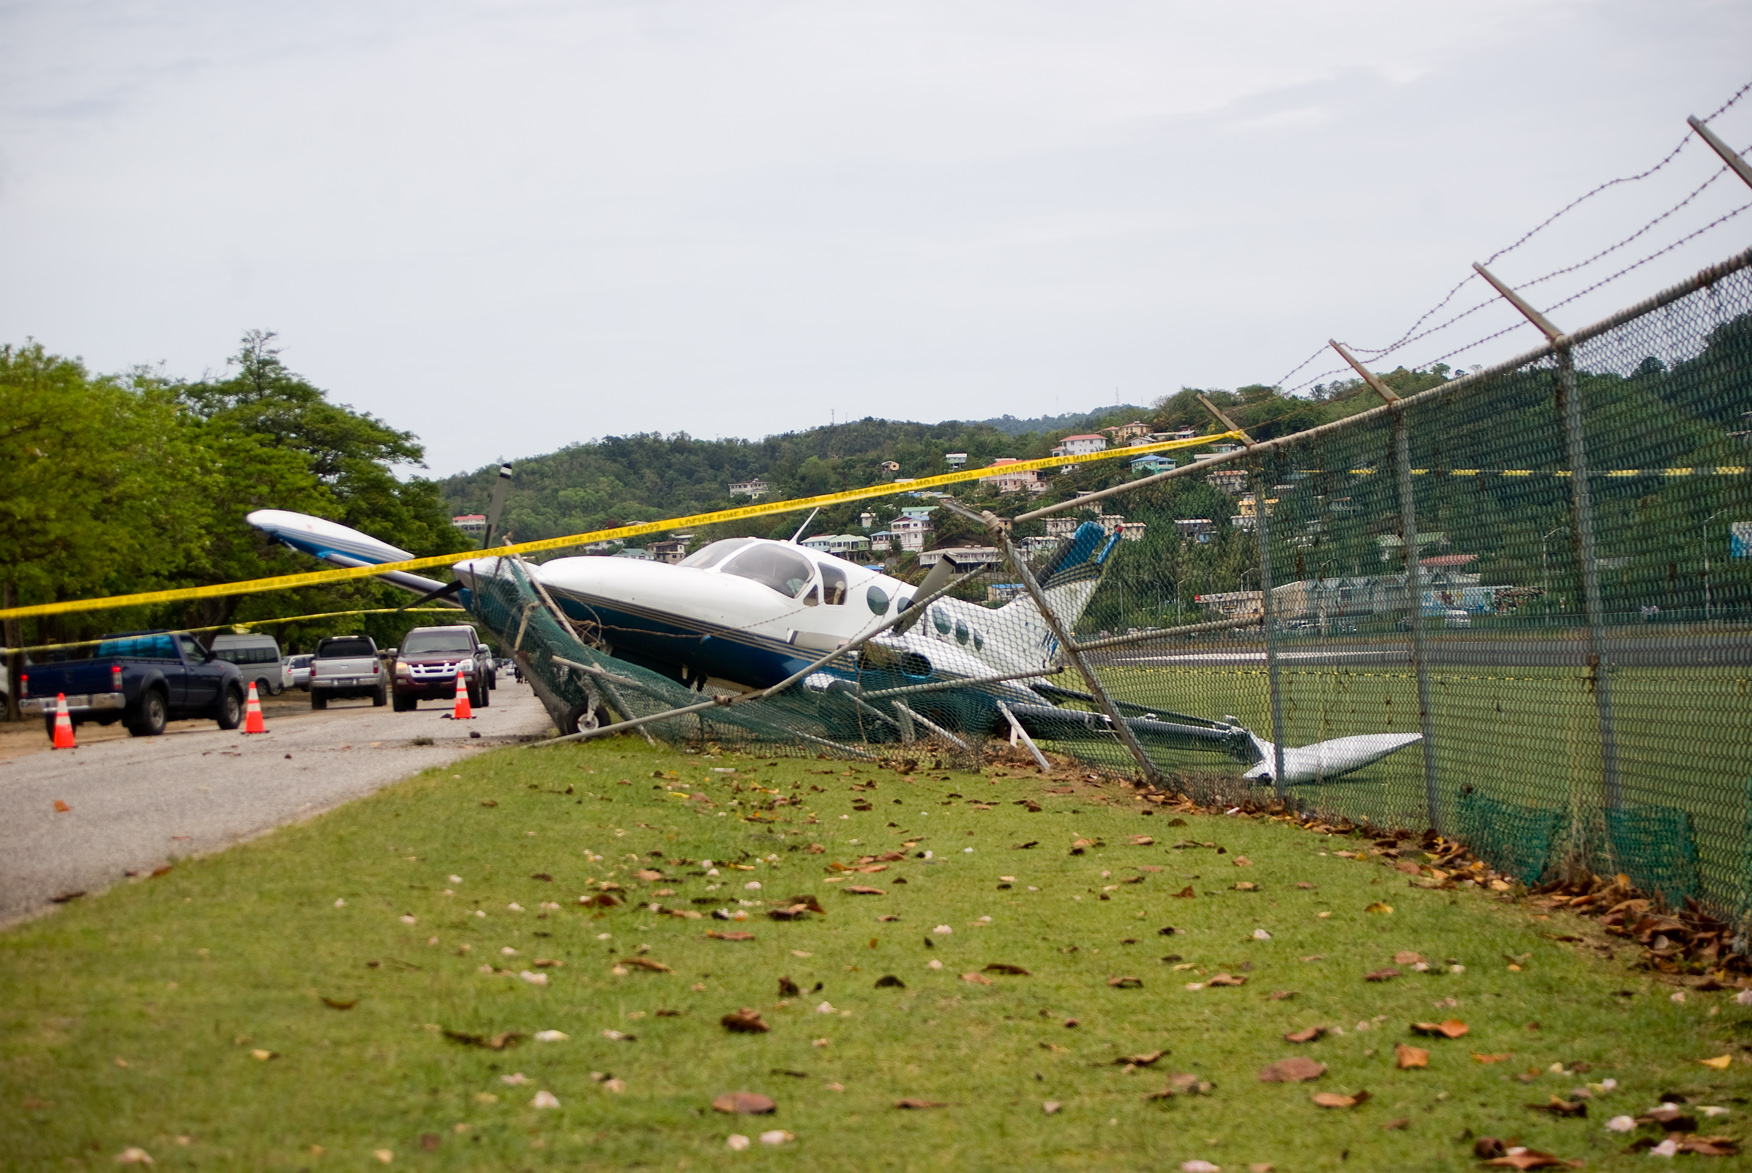 small plane crashes through fence on highway in emergency landing